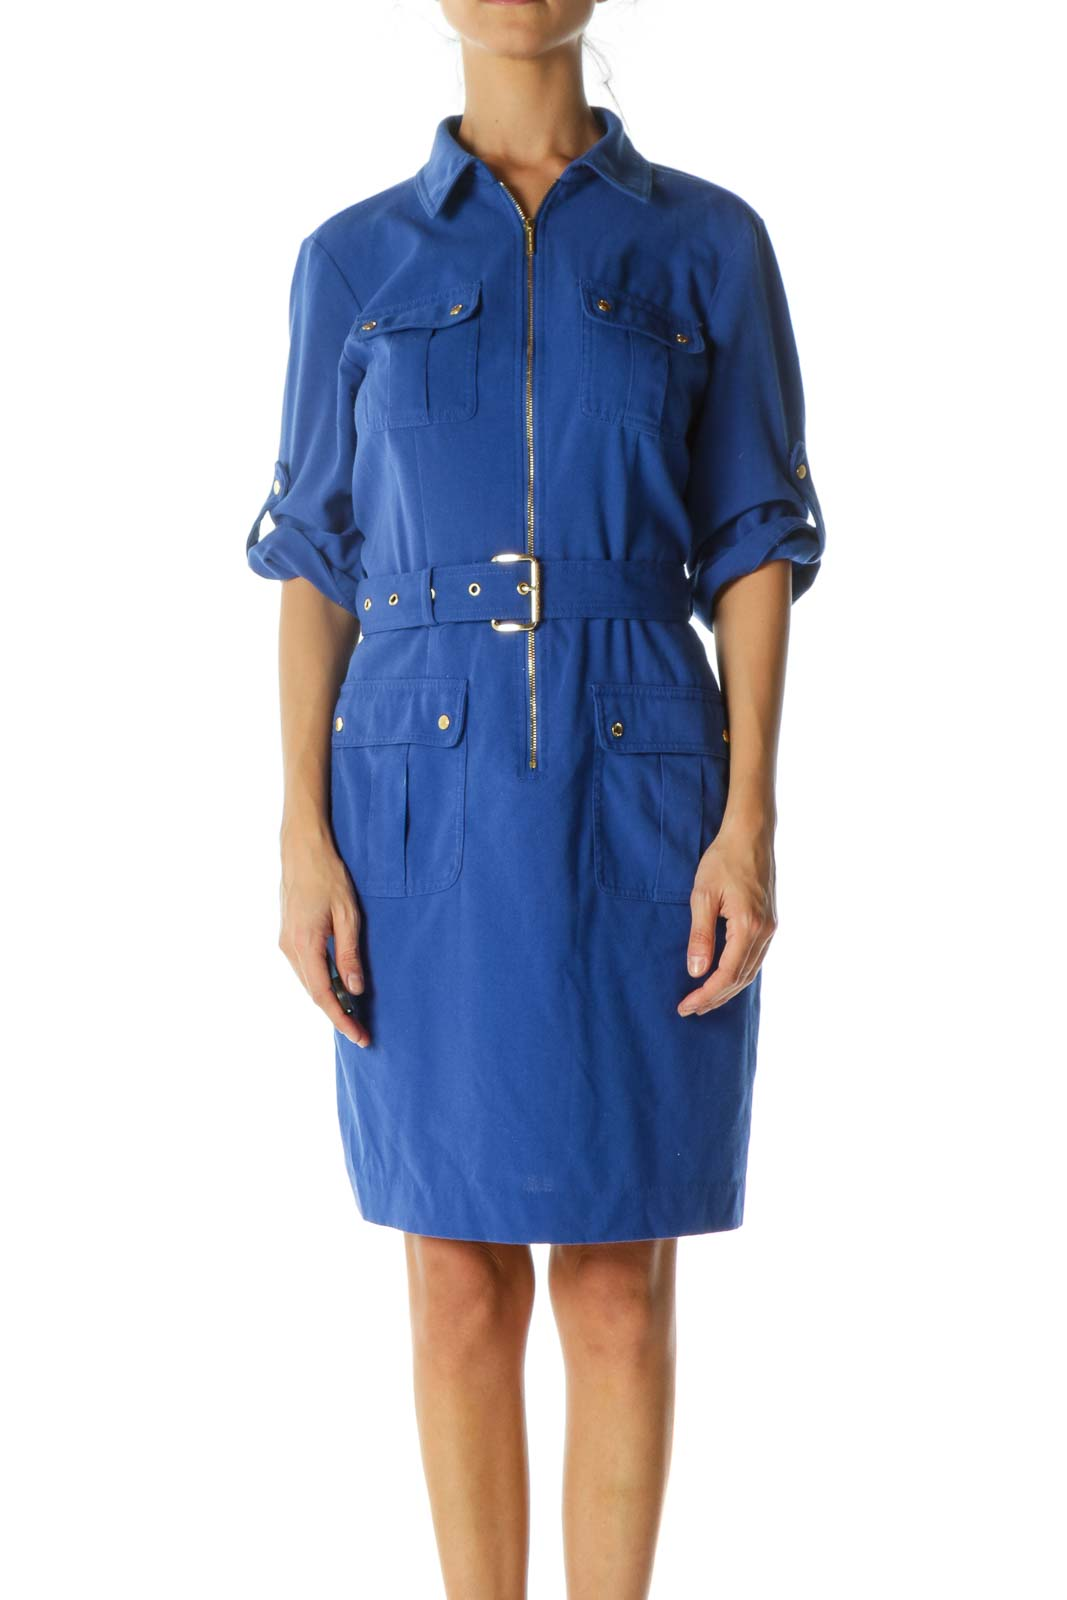 Royal Blue Gold Pocketed Zippered Stretch Roll-Up Sleeves Belted Dress